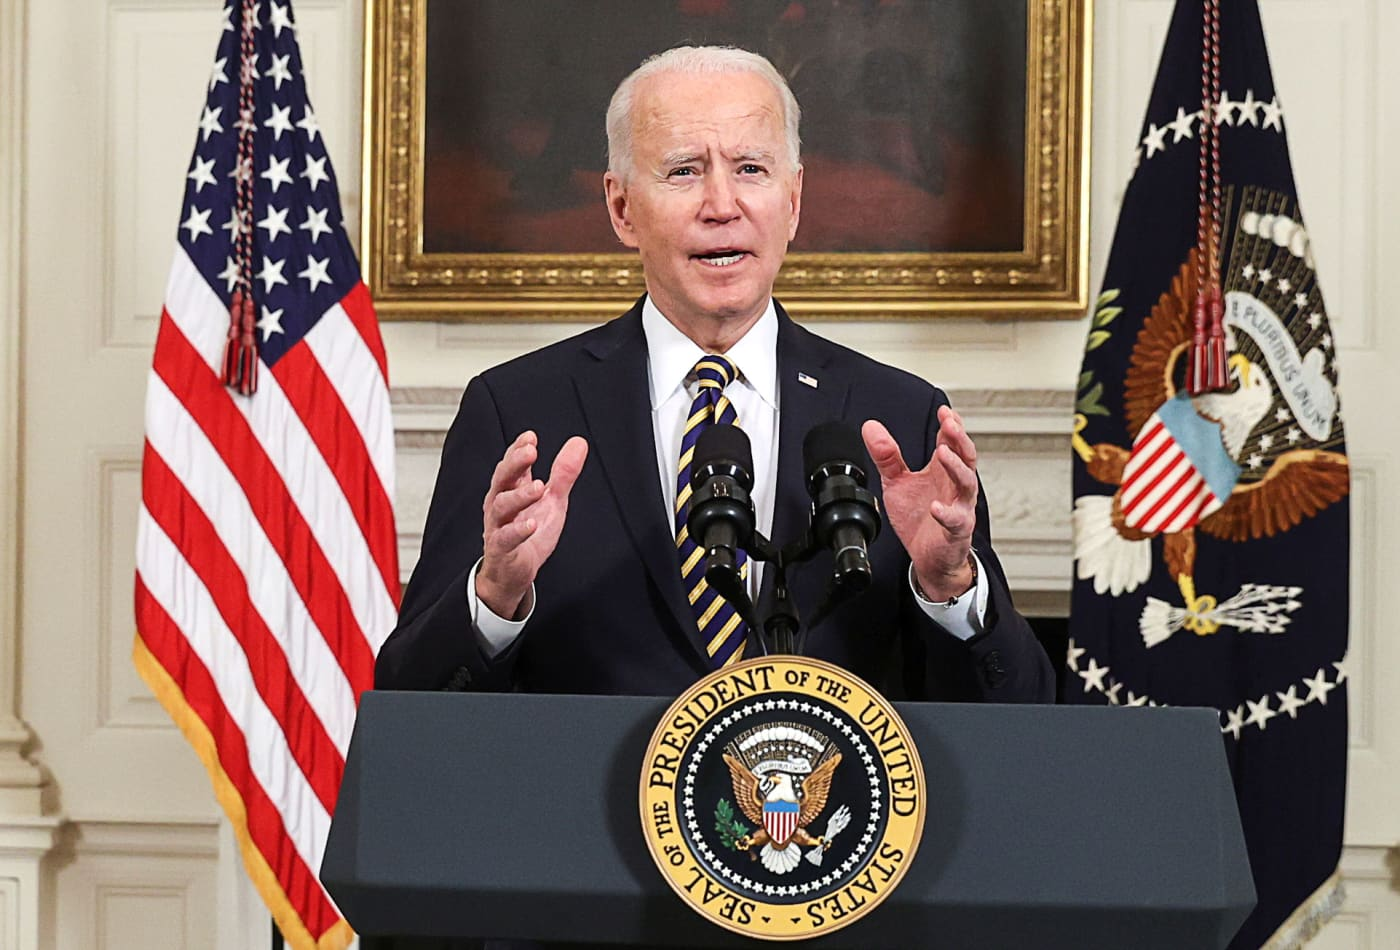 Biden expresses support for Amazon union vote in Alabama: 'Make your voice heard'